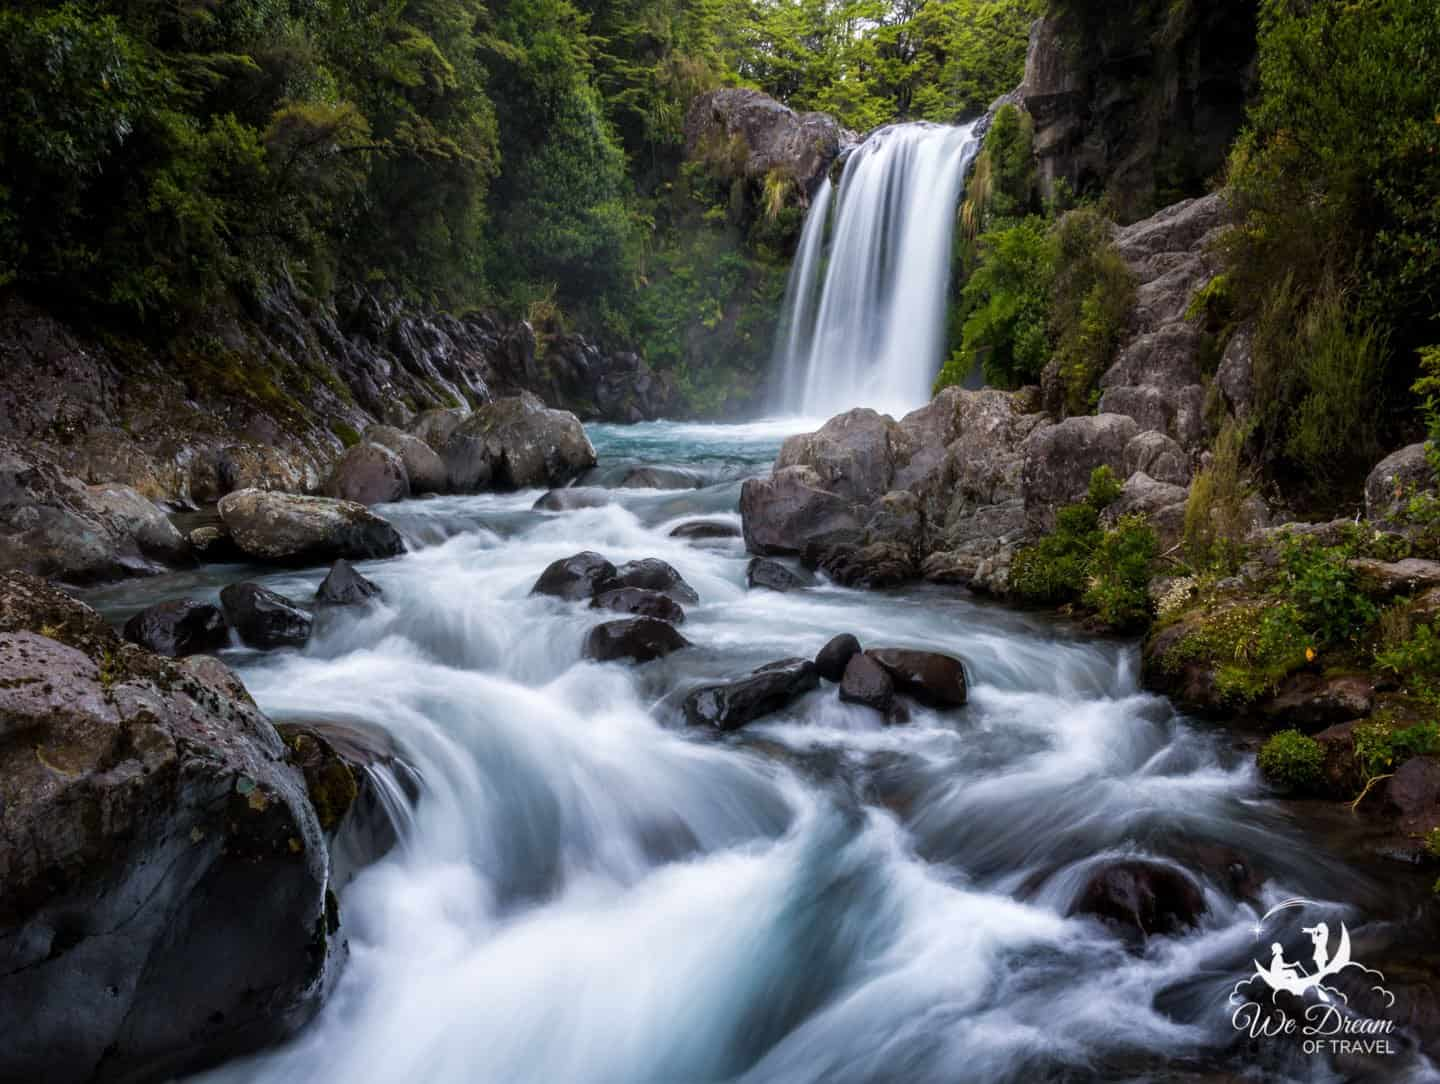 Long Exposure waterfall photography for beginners